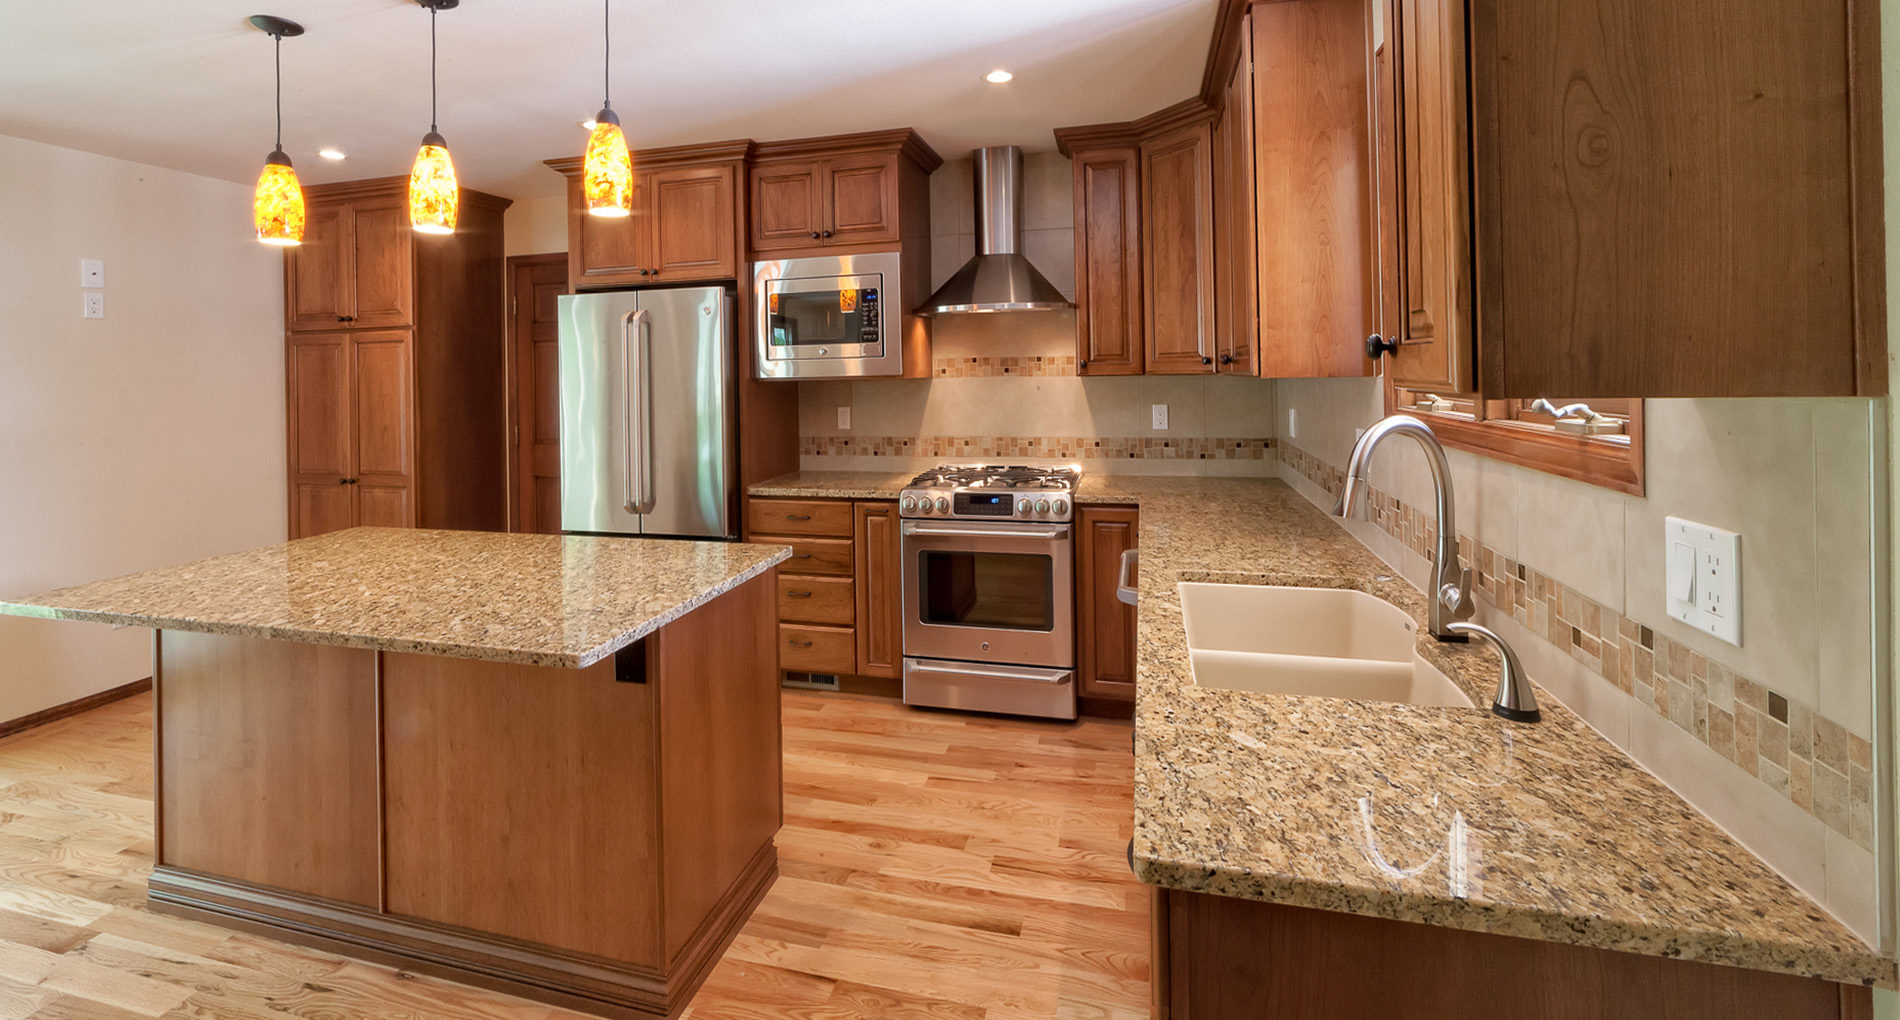 How Kitchen Remodeling Can Improve Health